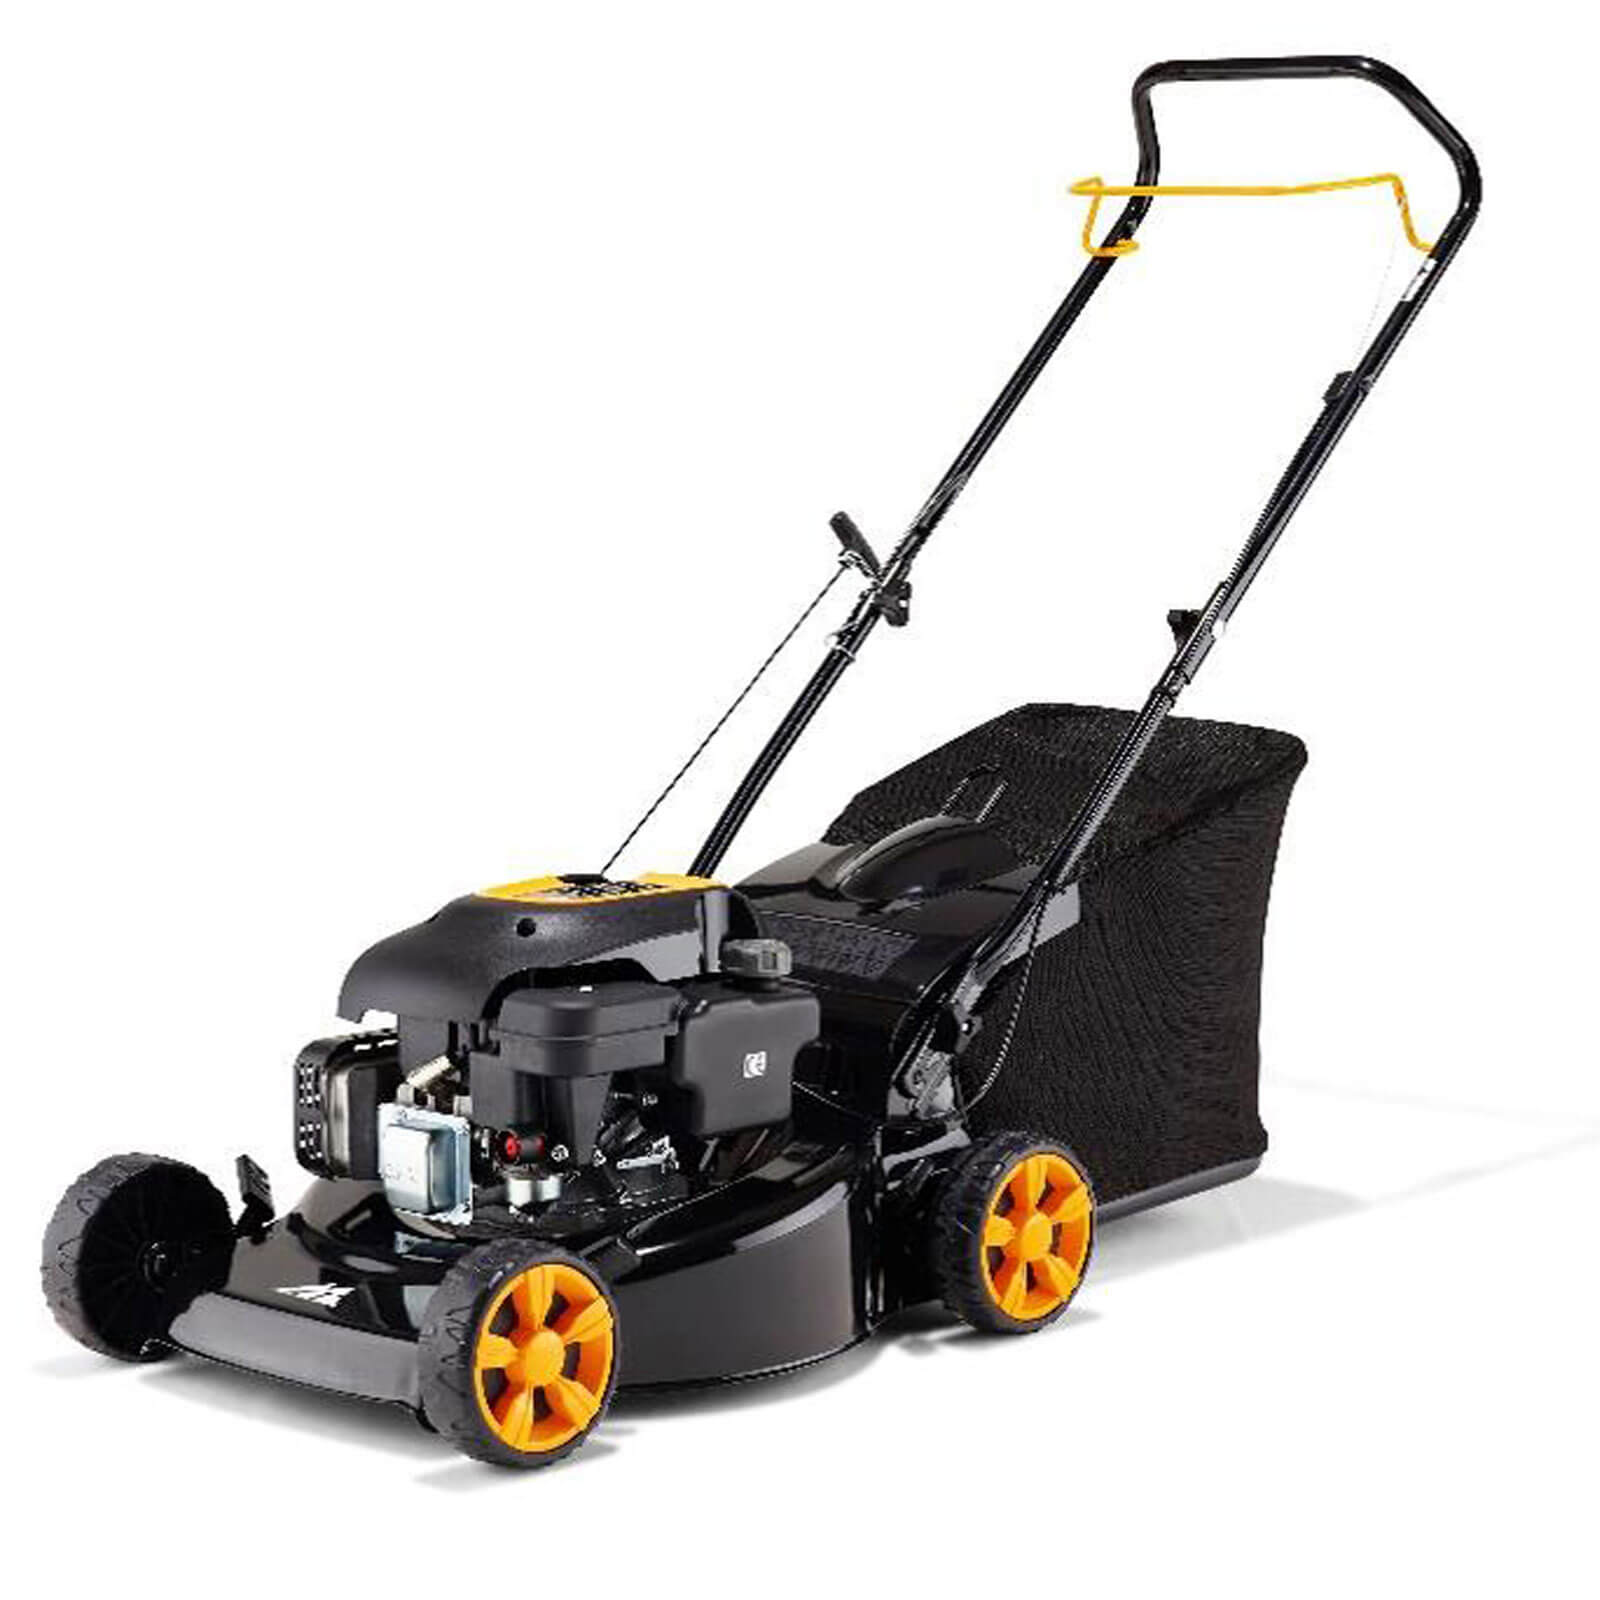 mcculloch m40 125 push petrol rotary lawnmower 400mm. Black Bedroom Furniture Sets. Home Design Ideas